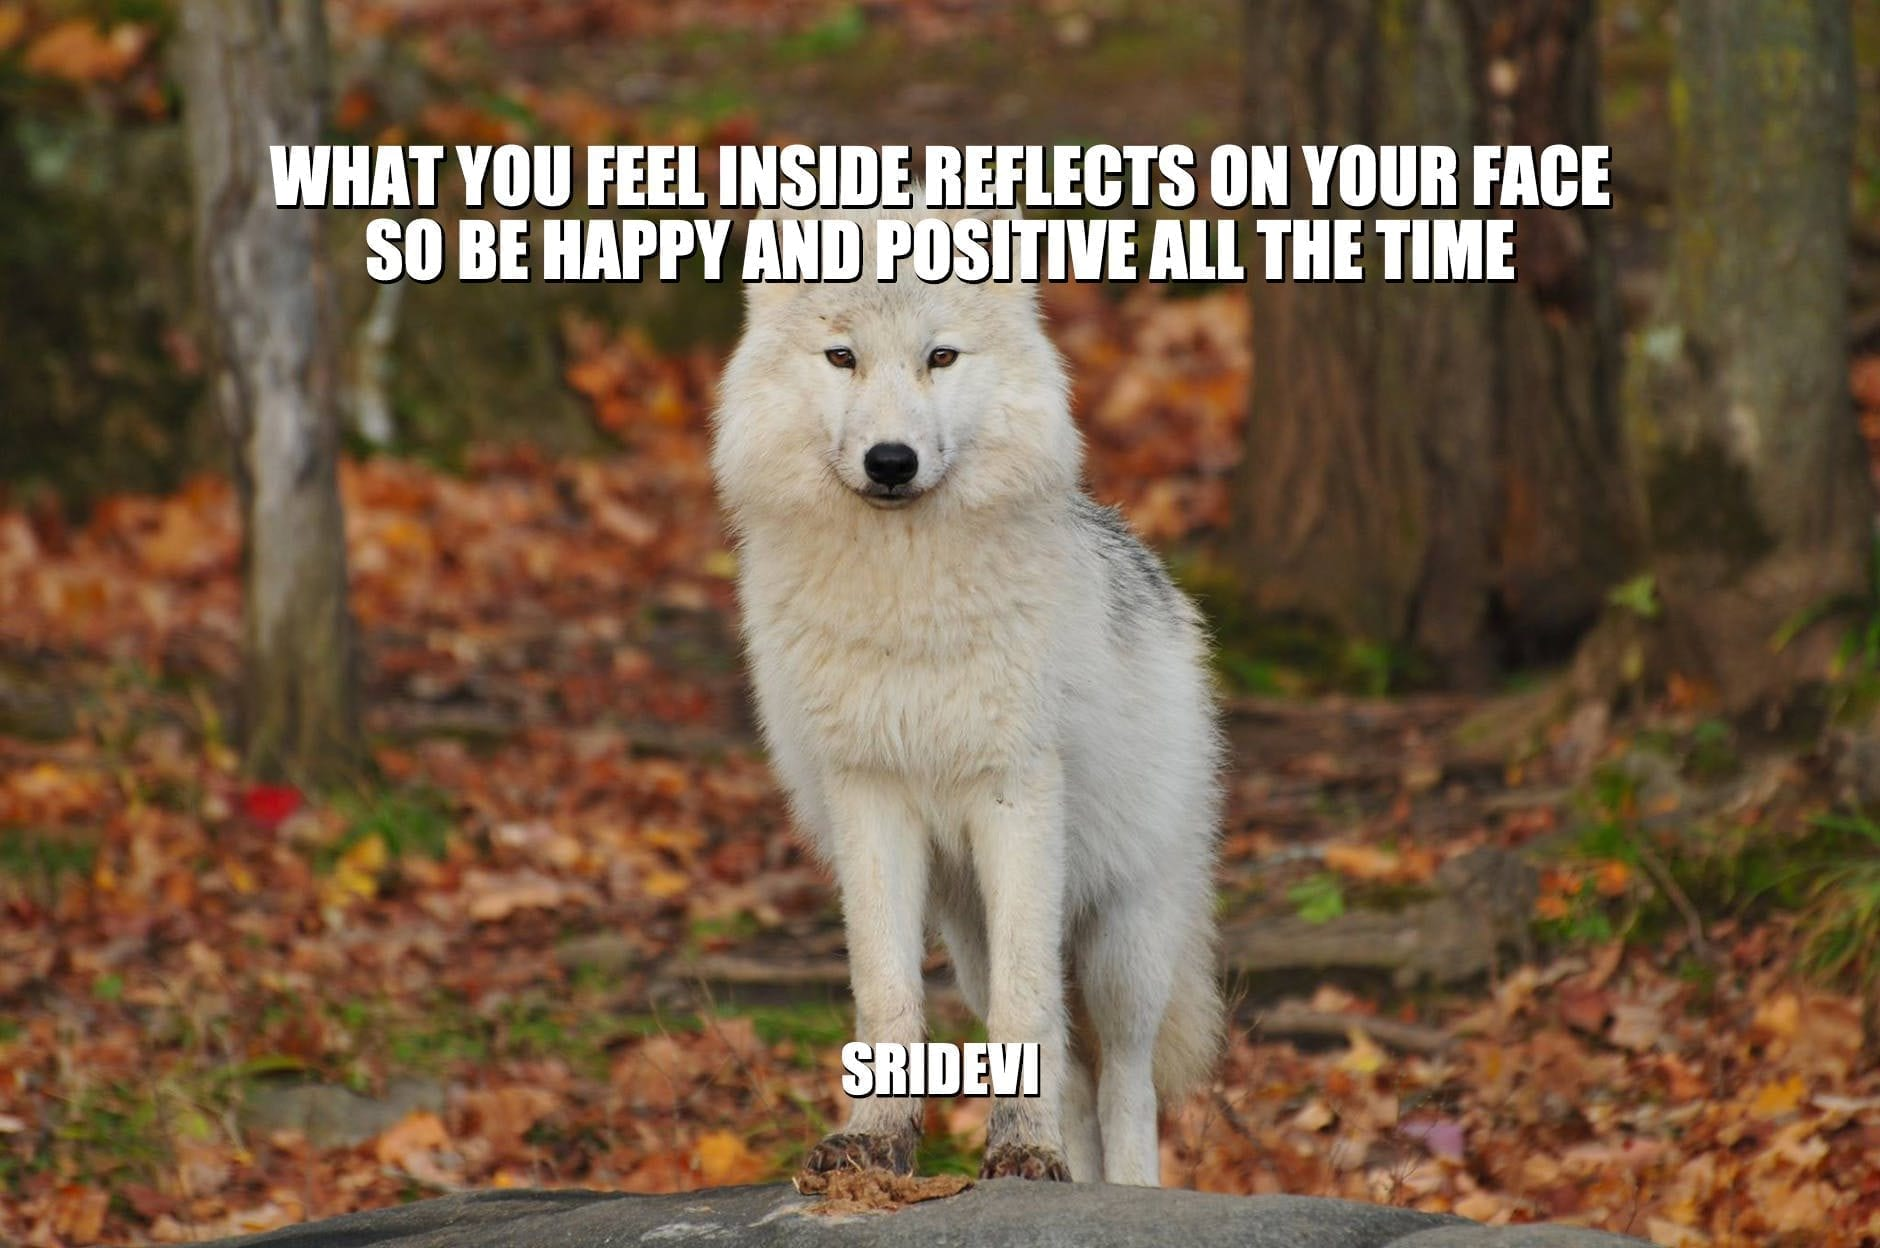 Daily Quotes: What You Feel Inside Reflects On Your Face. So Be Happy And Positive All The Time petworldglobal.com